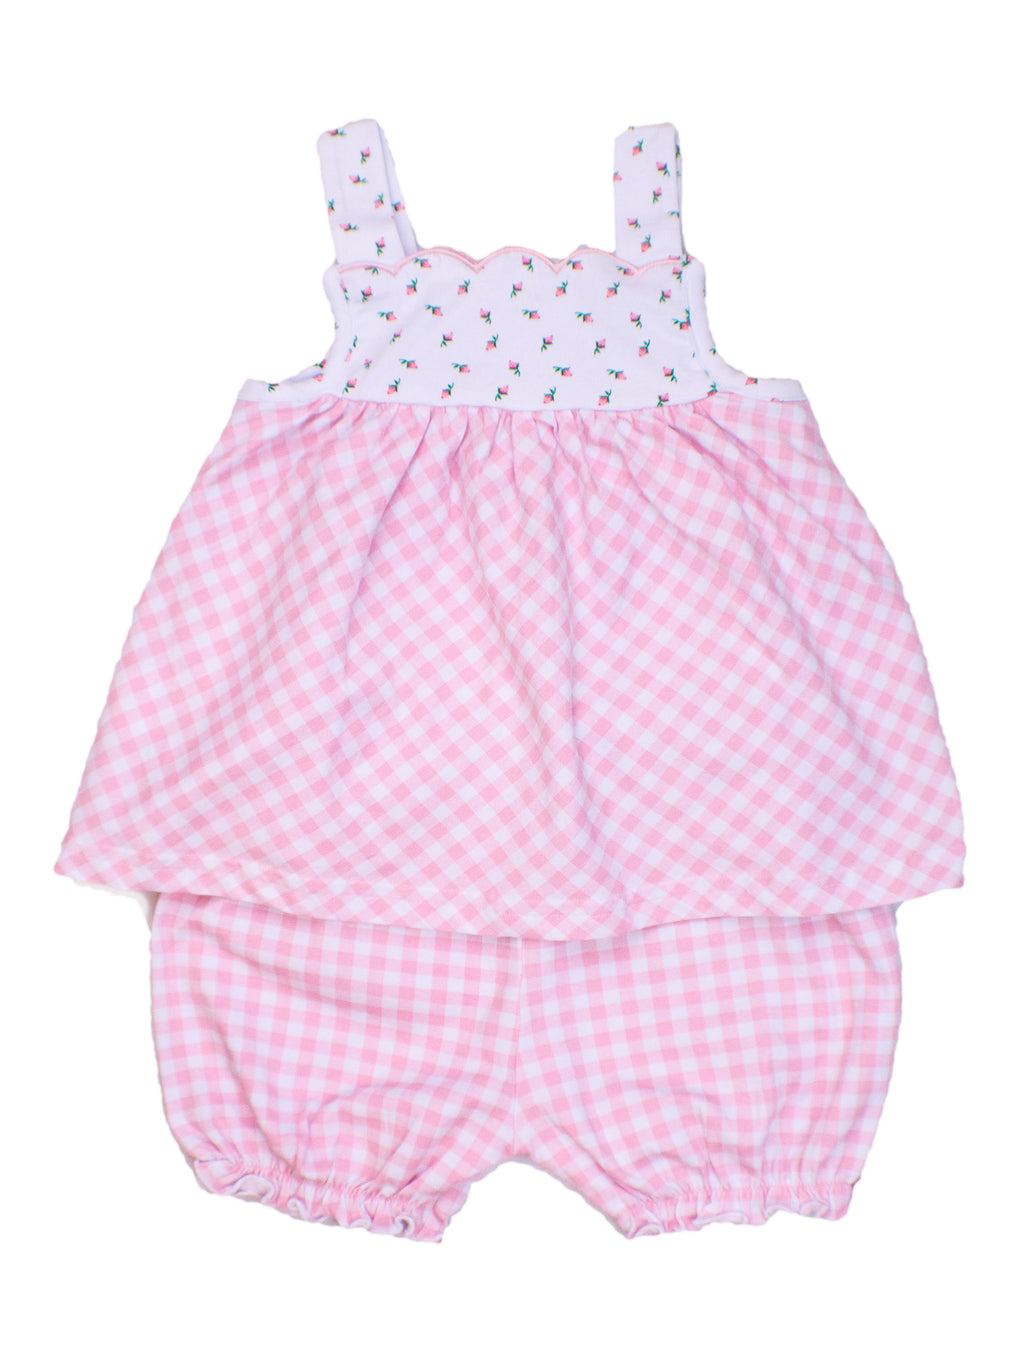 Girls Knit Floral/Pink Check Scalloped Bloomer Set